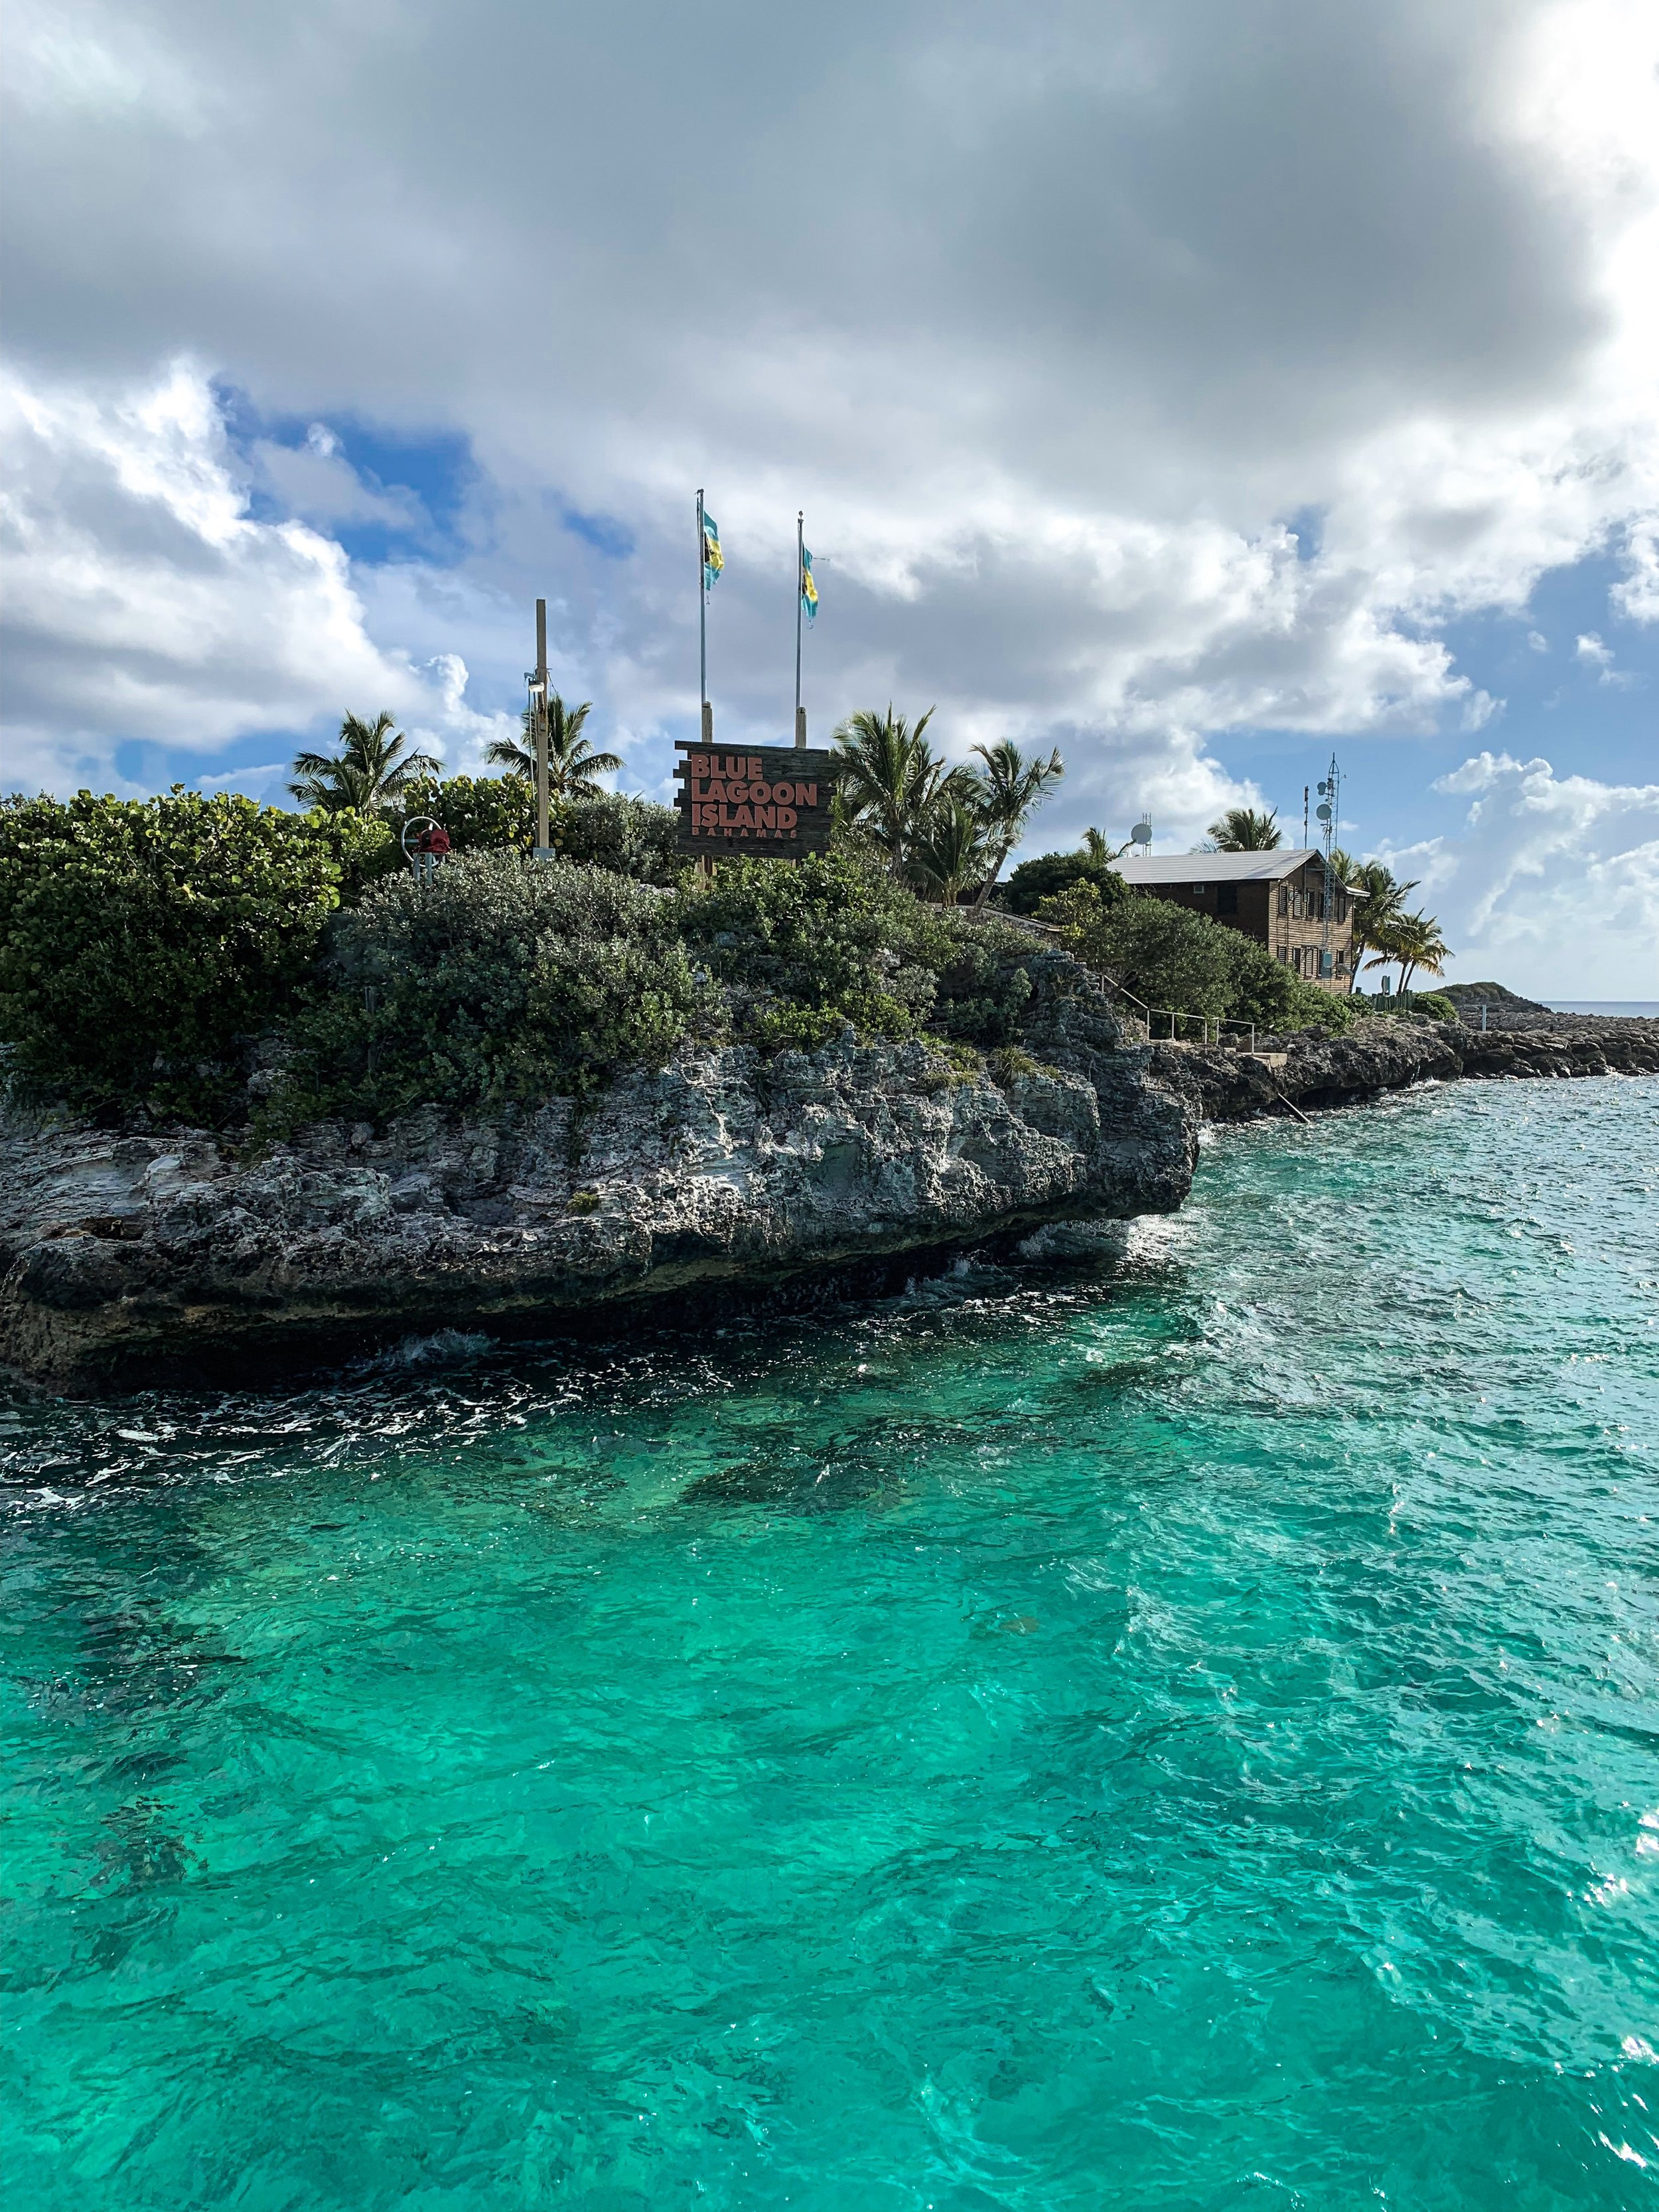 We sailed to a private beach, where we spent our time at in Nassau.